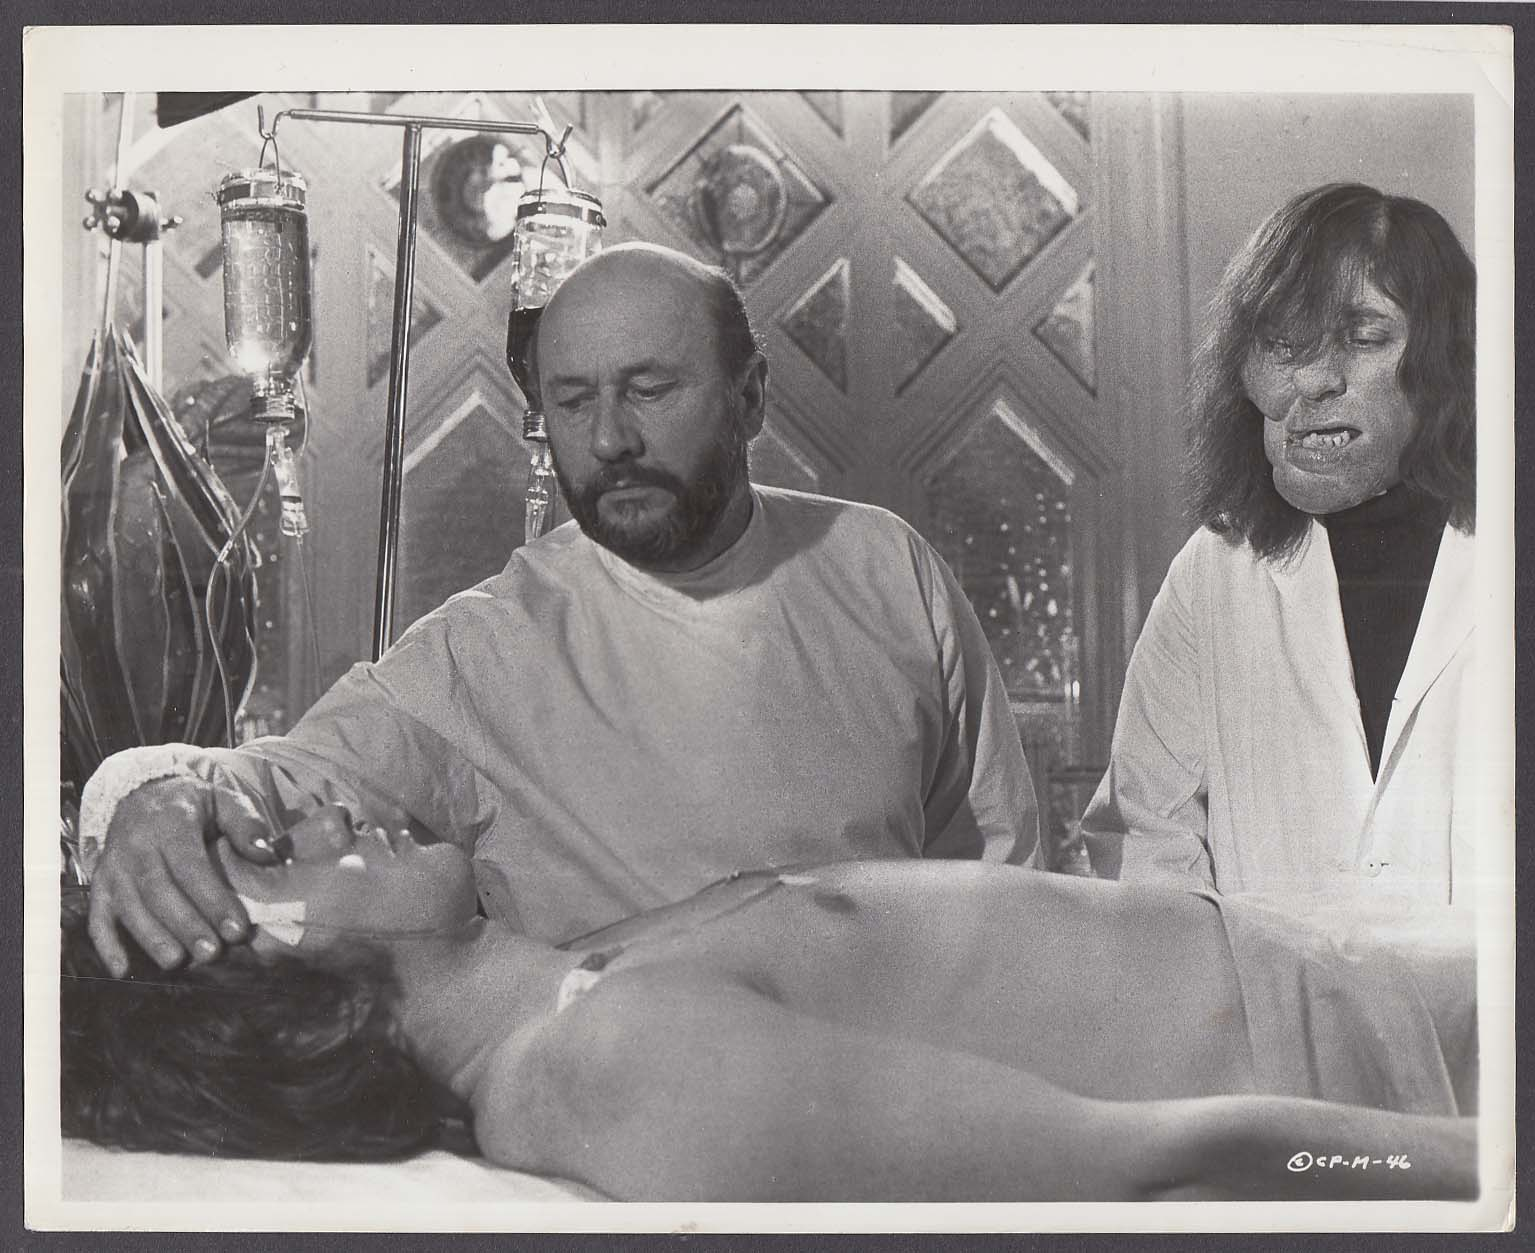 Donald Pleasance & Tom Baker in The Mutations 8x10 photo 1974